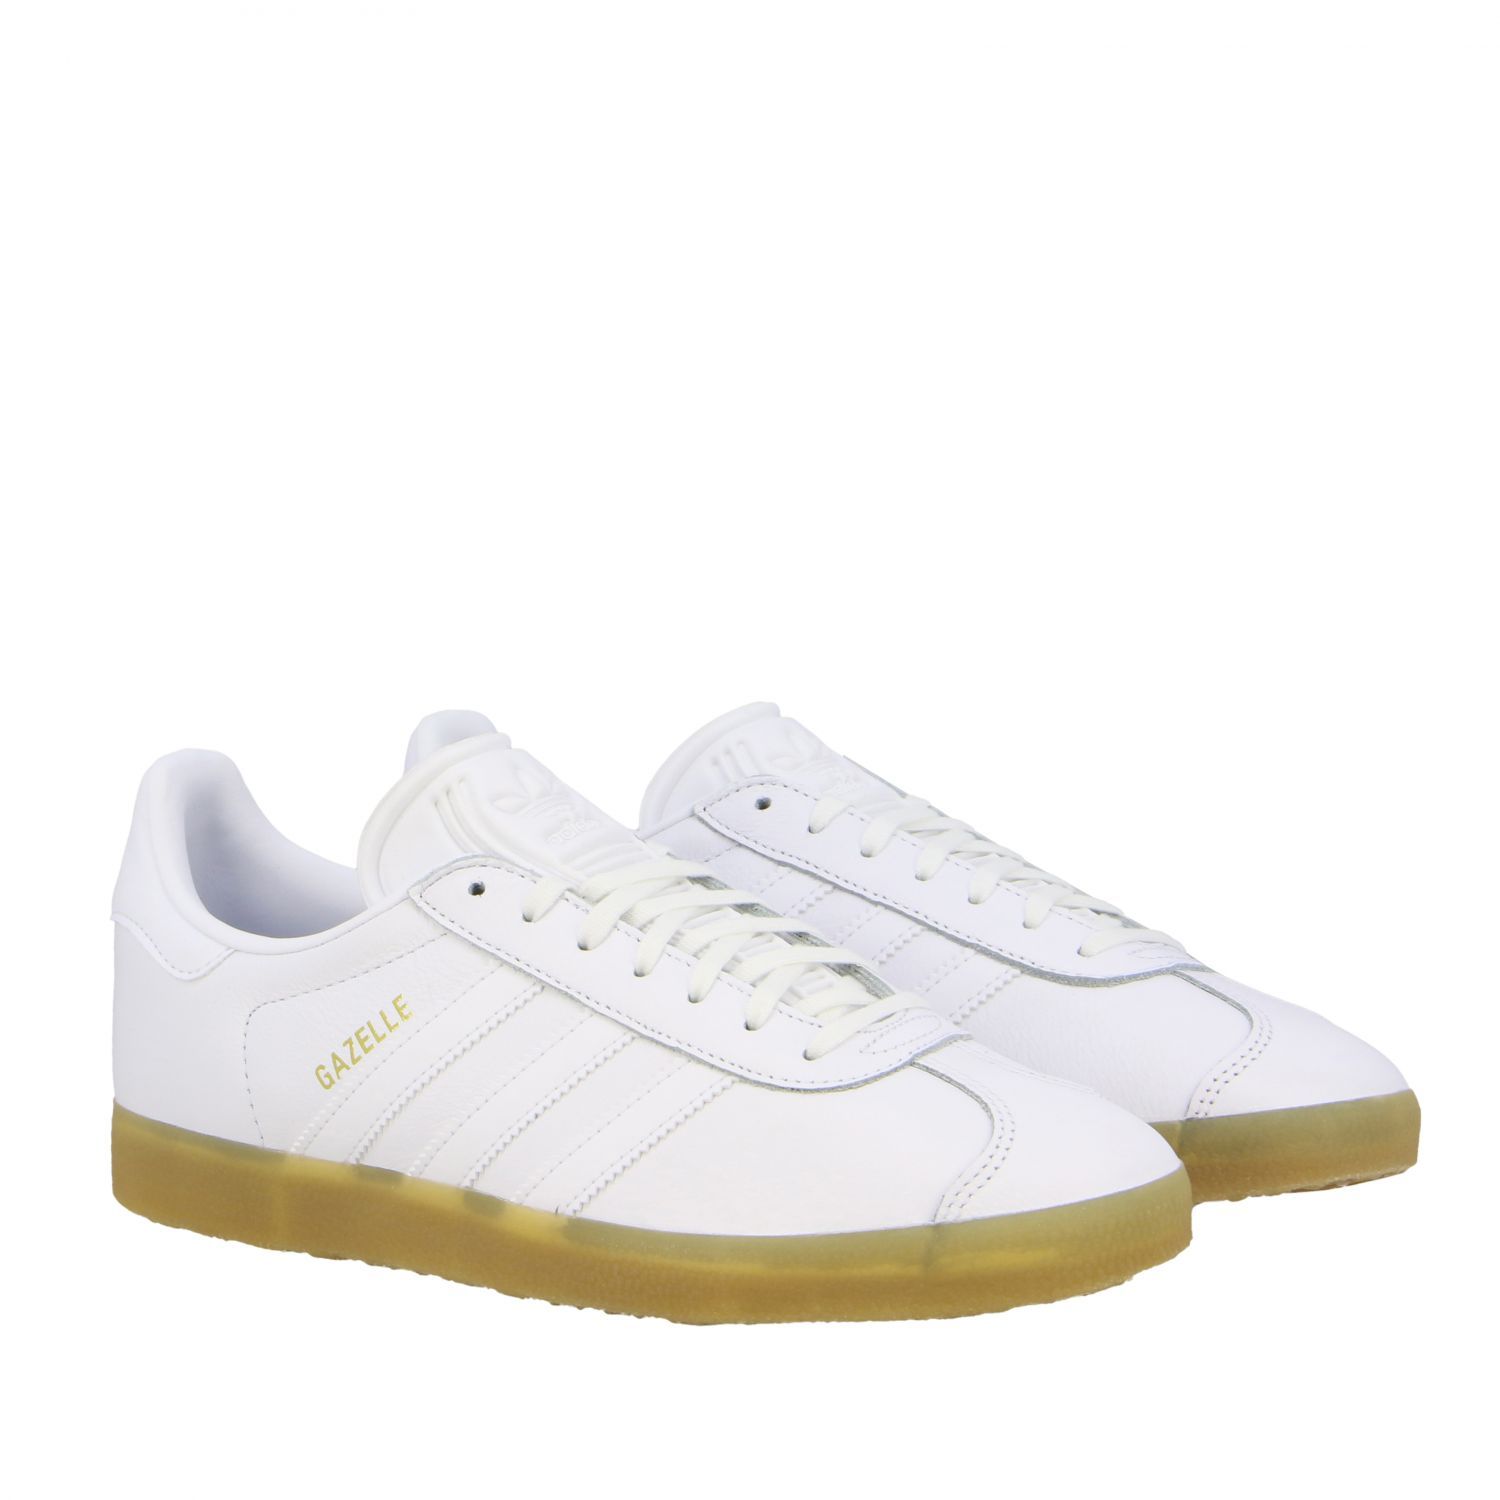 Sneakers Adidas Originals: Adidas Originals Gazelle leather sneakers with logo white 2